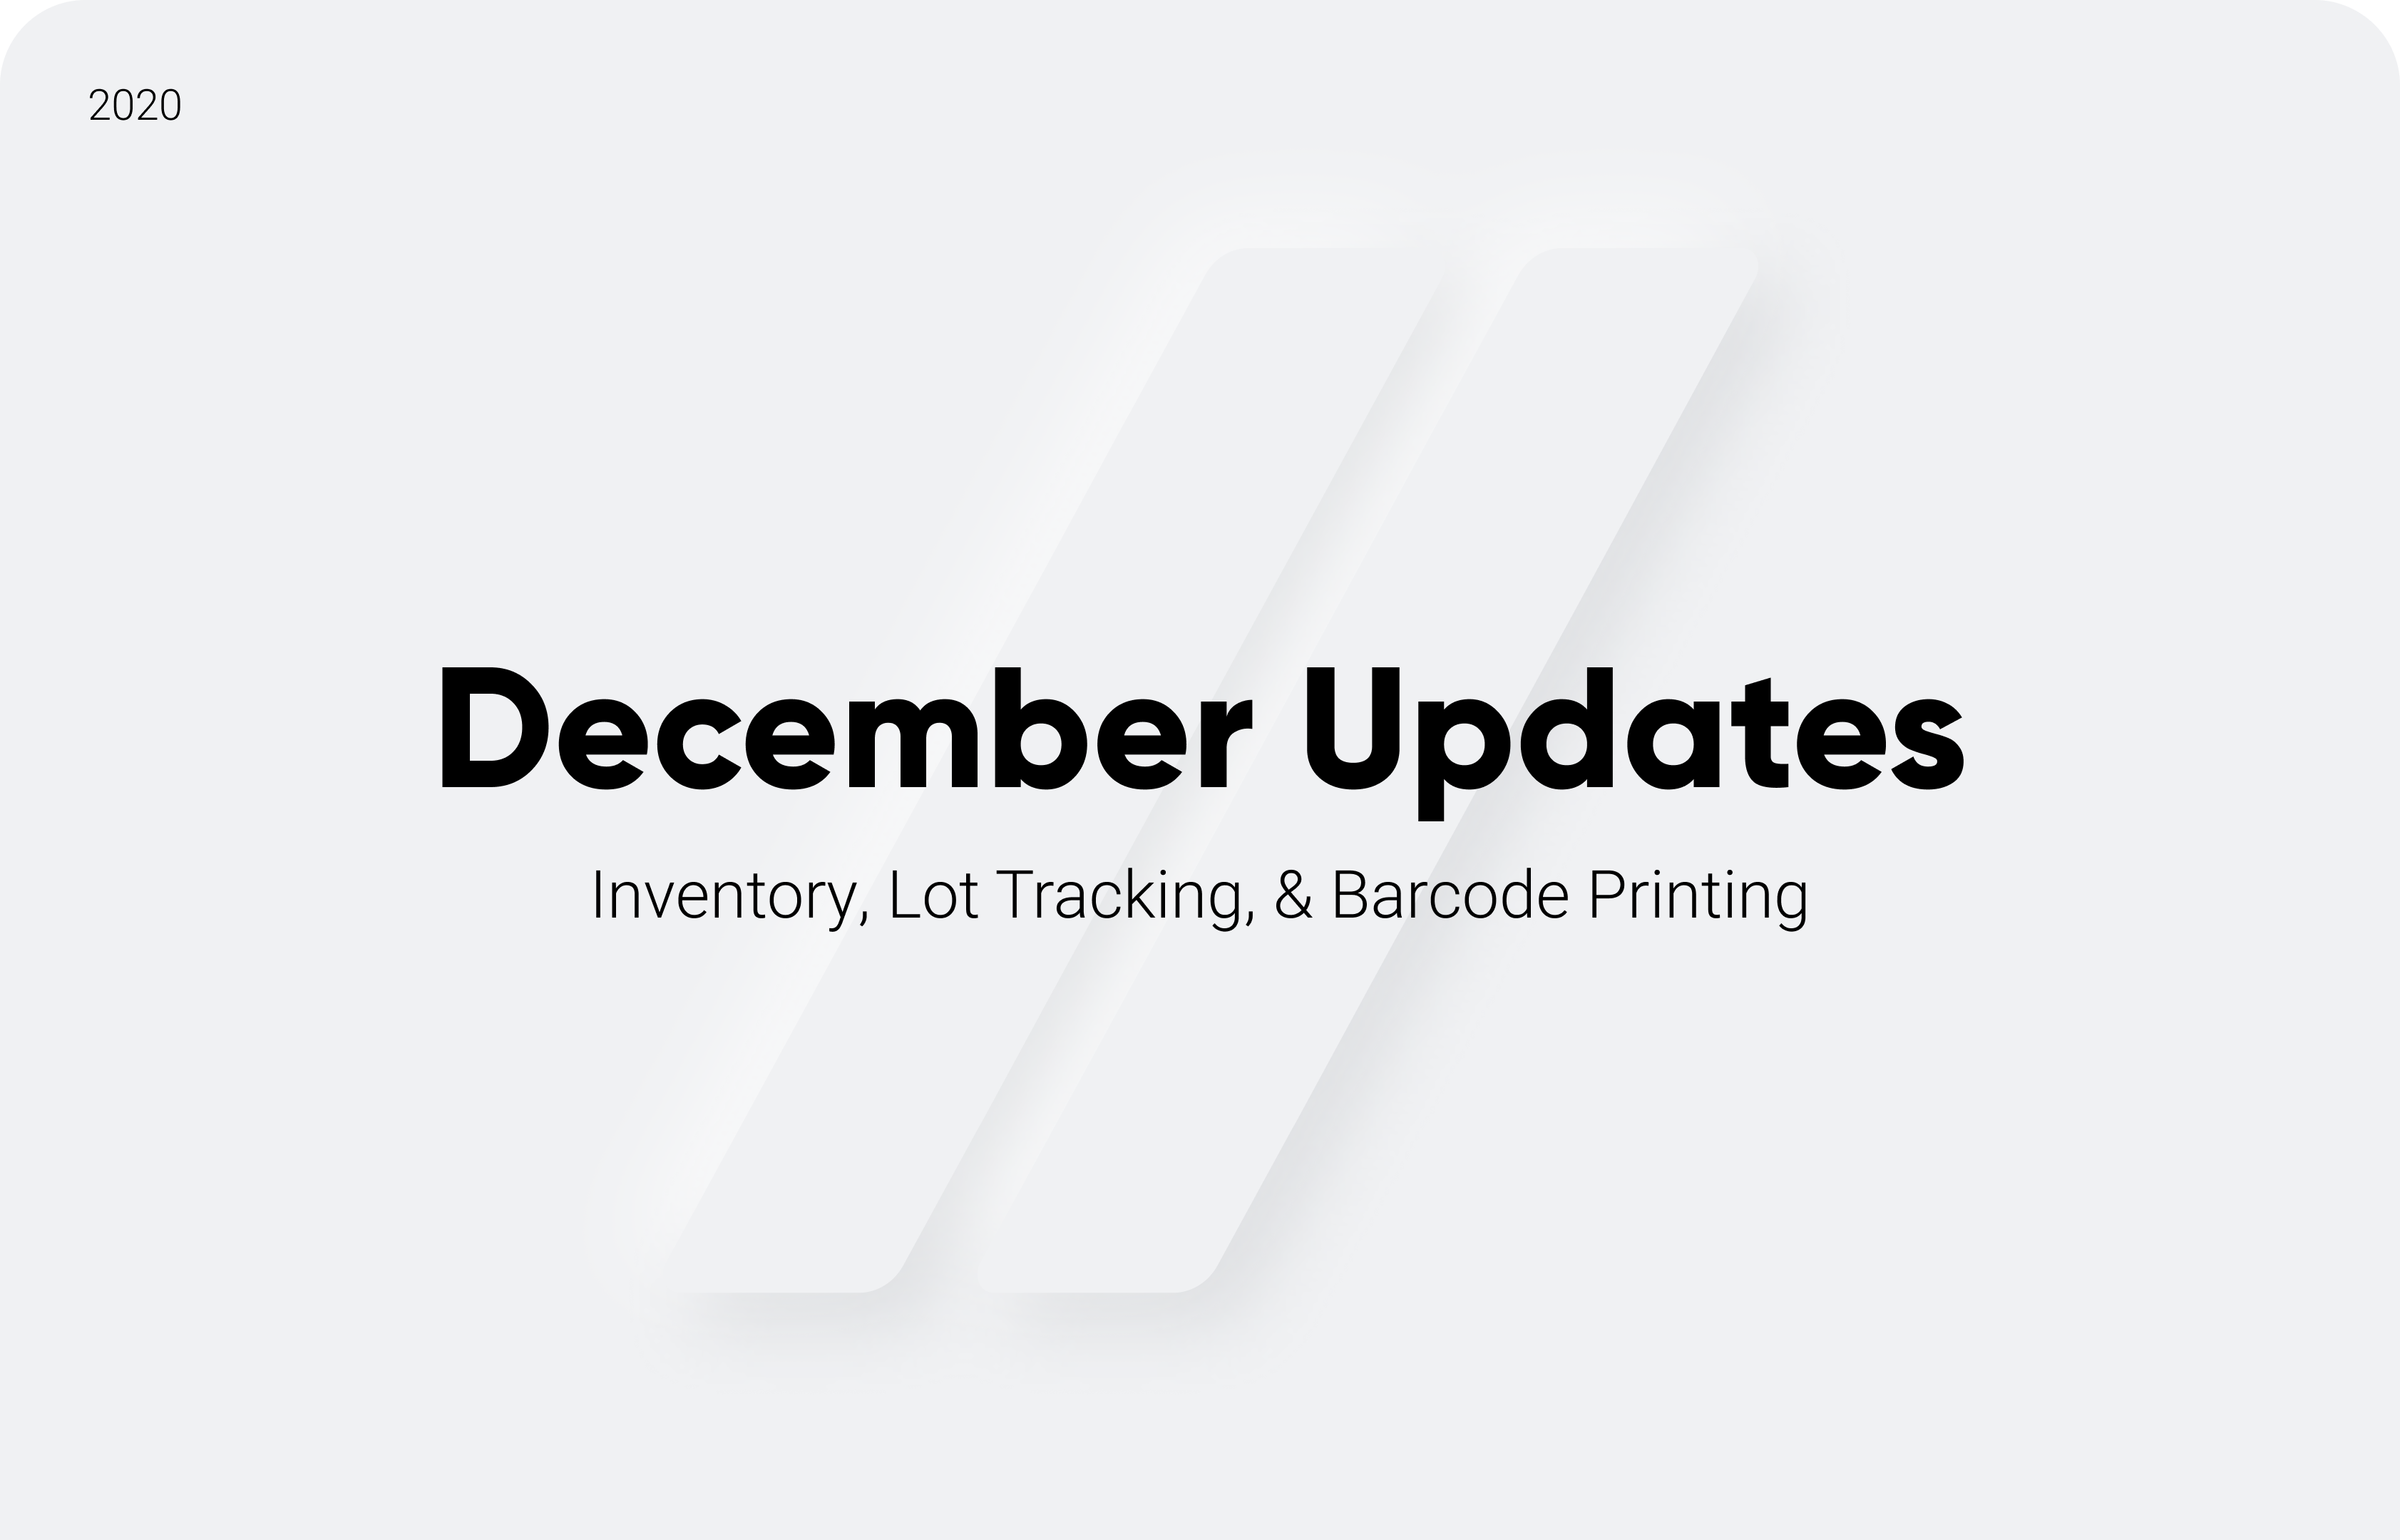 December Updates: Inventory, Lot Tracking, & Barcode Printing